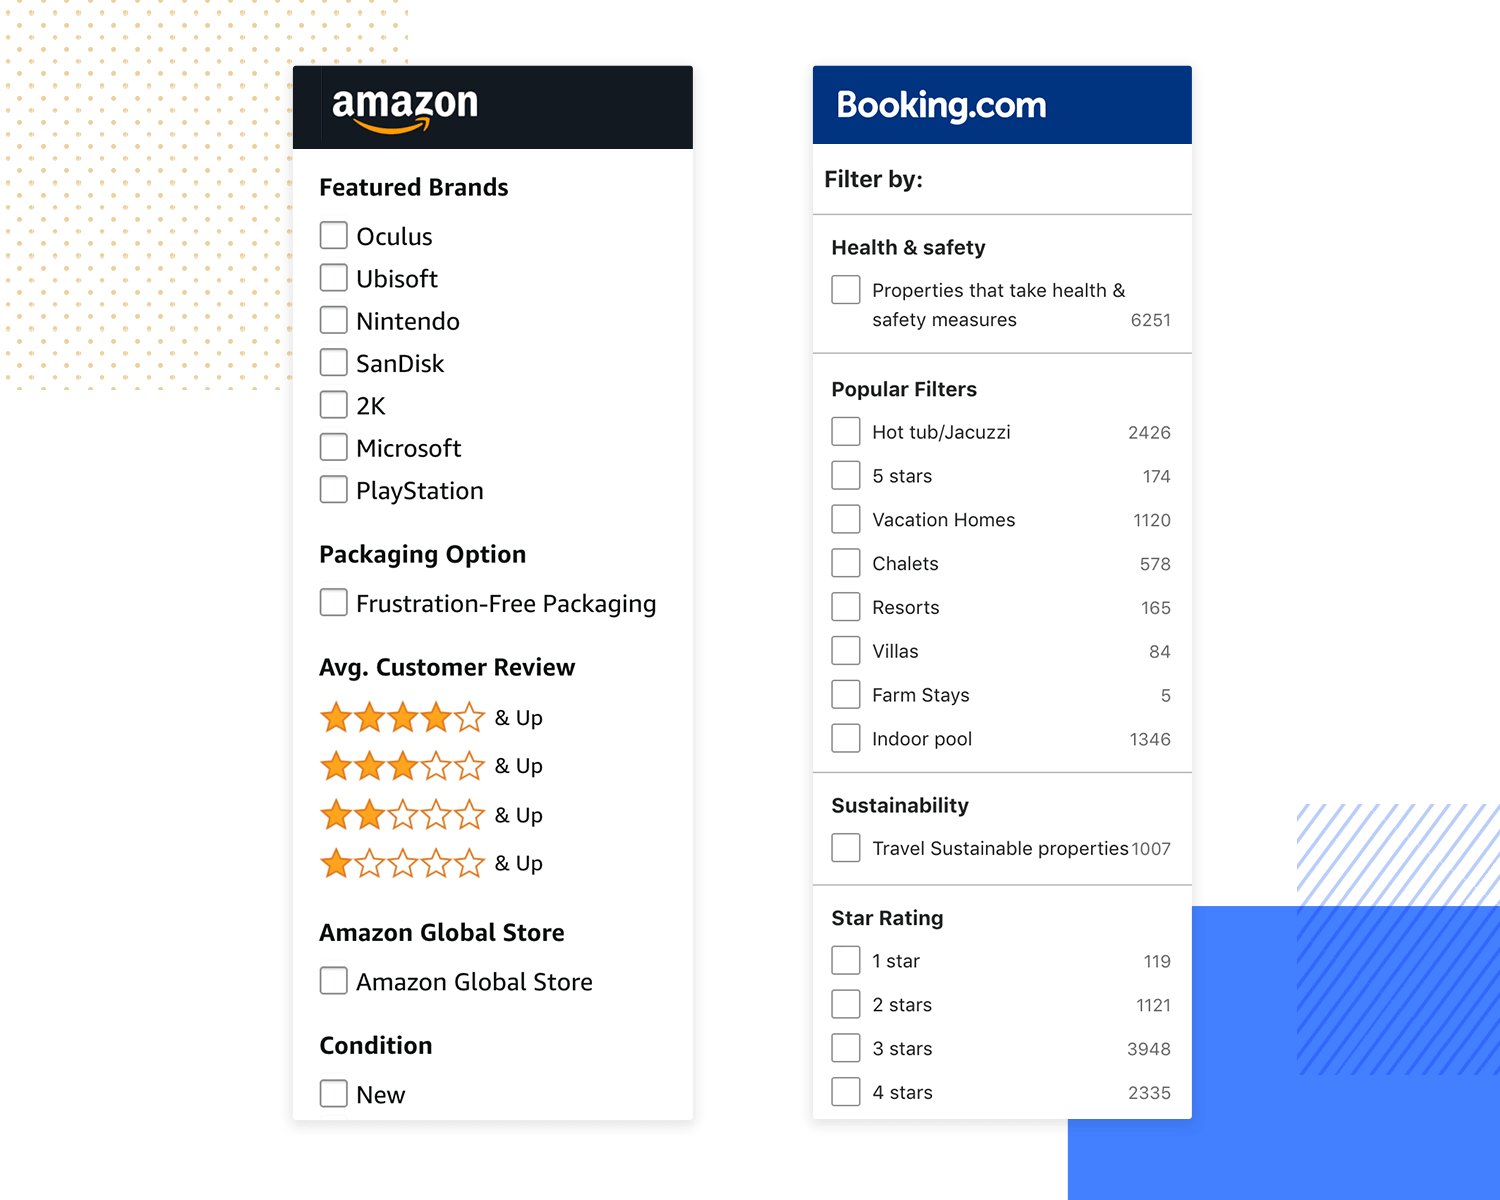 examples of search systems for great information architecture - booking.com and amazon